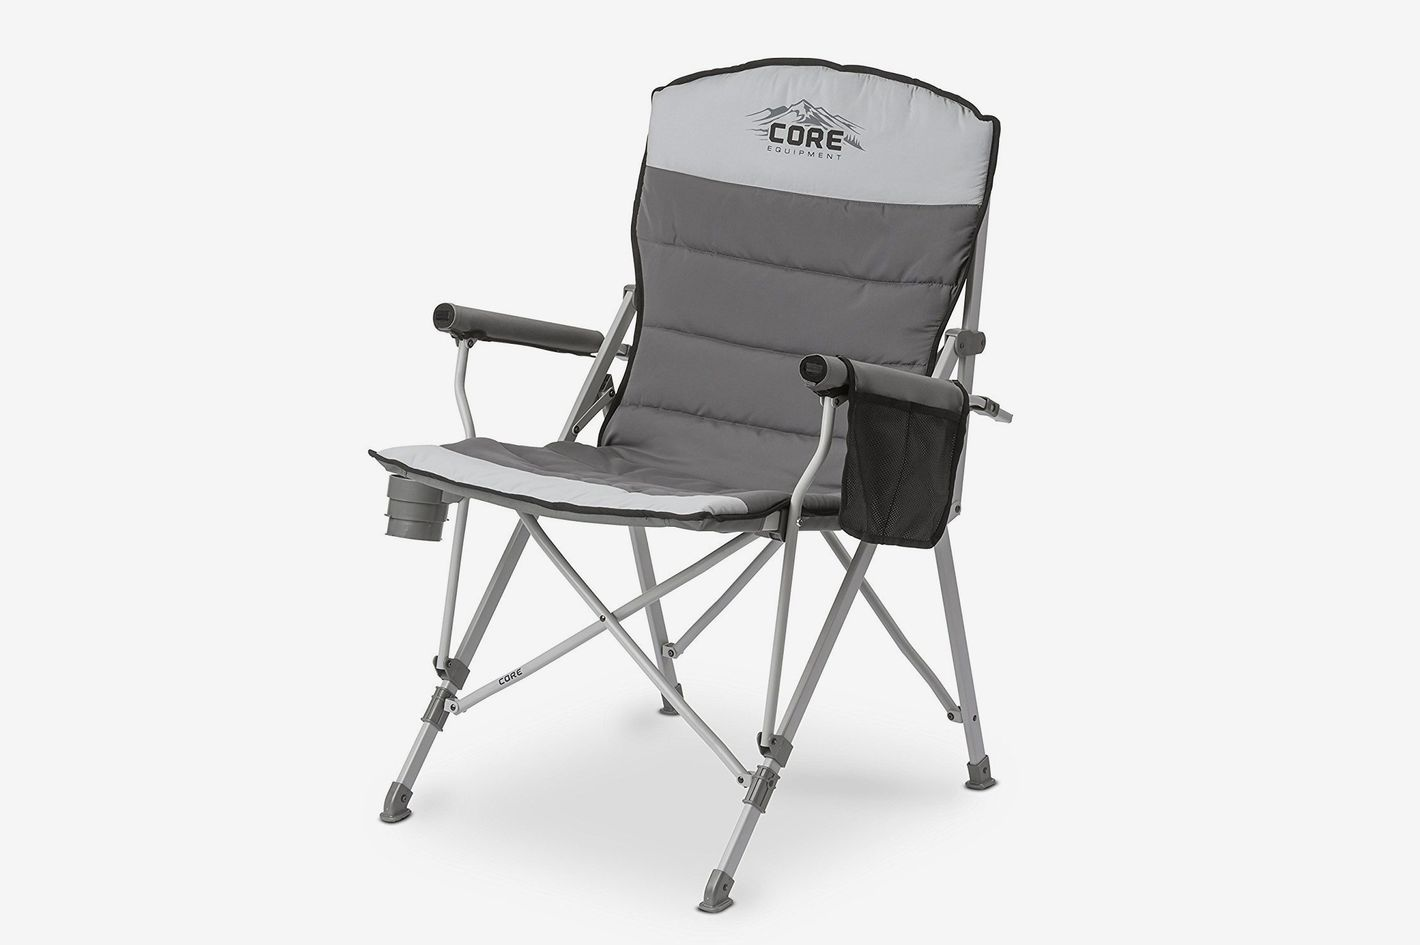 Merveilleux The Best Comfortable Lawn Chair. Core Equipment Folding Padded Hard Arm  Chair With Carry Bag